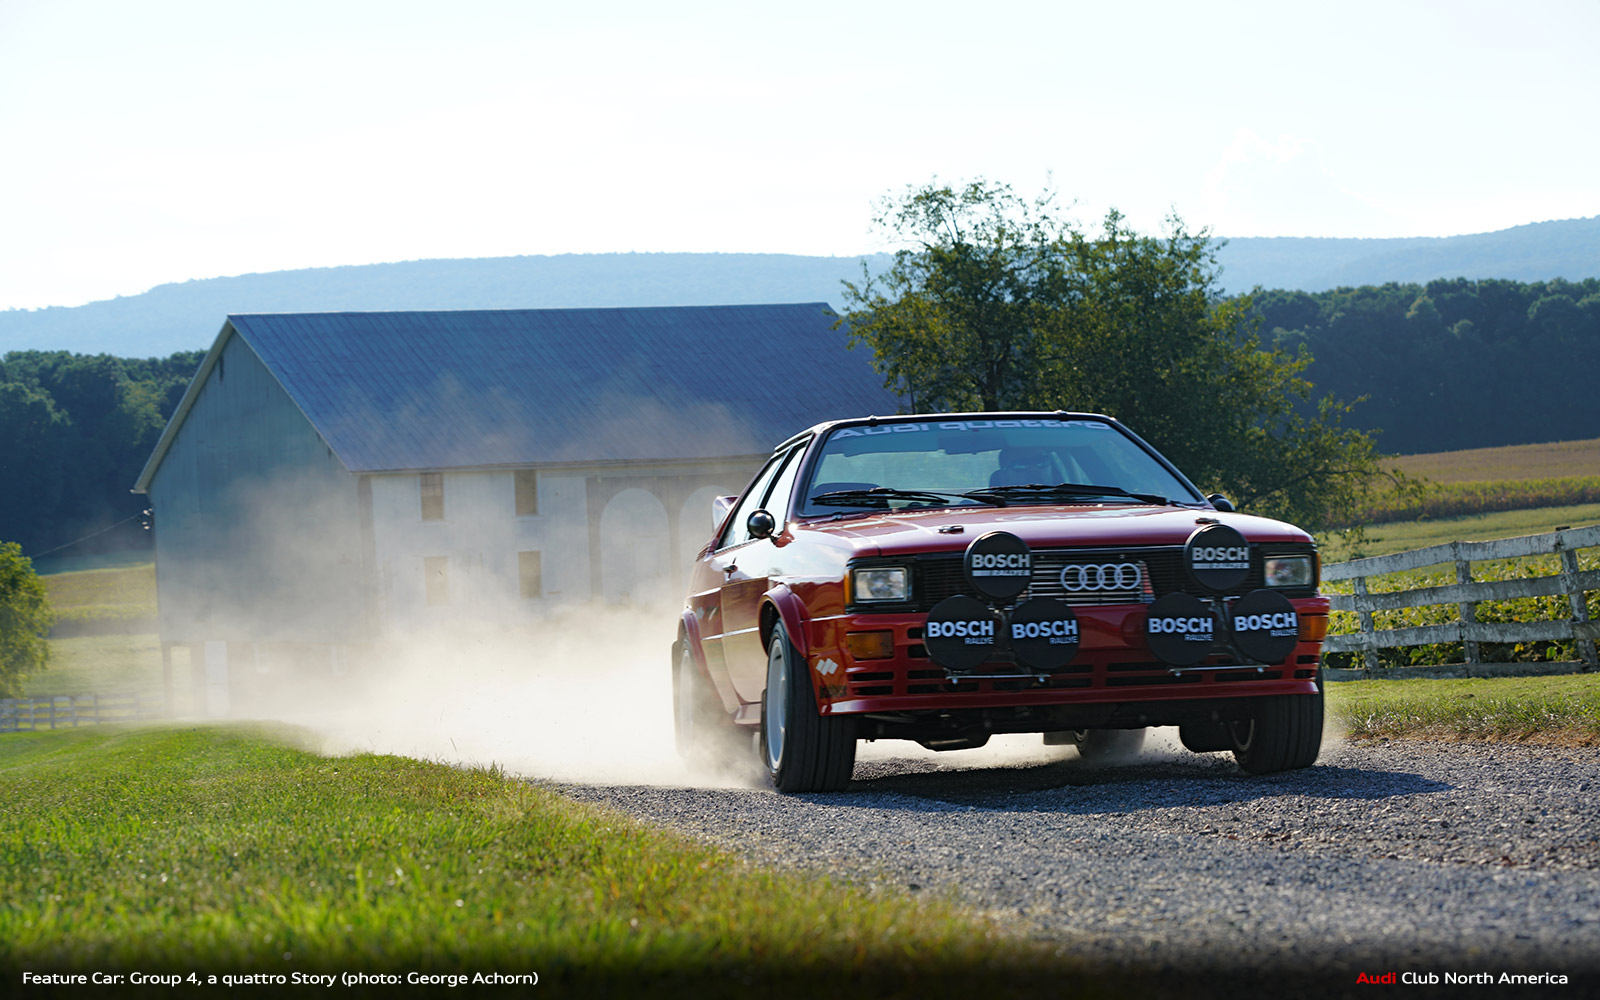 Feature Car: Group 4, a quattro Story